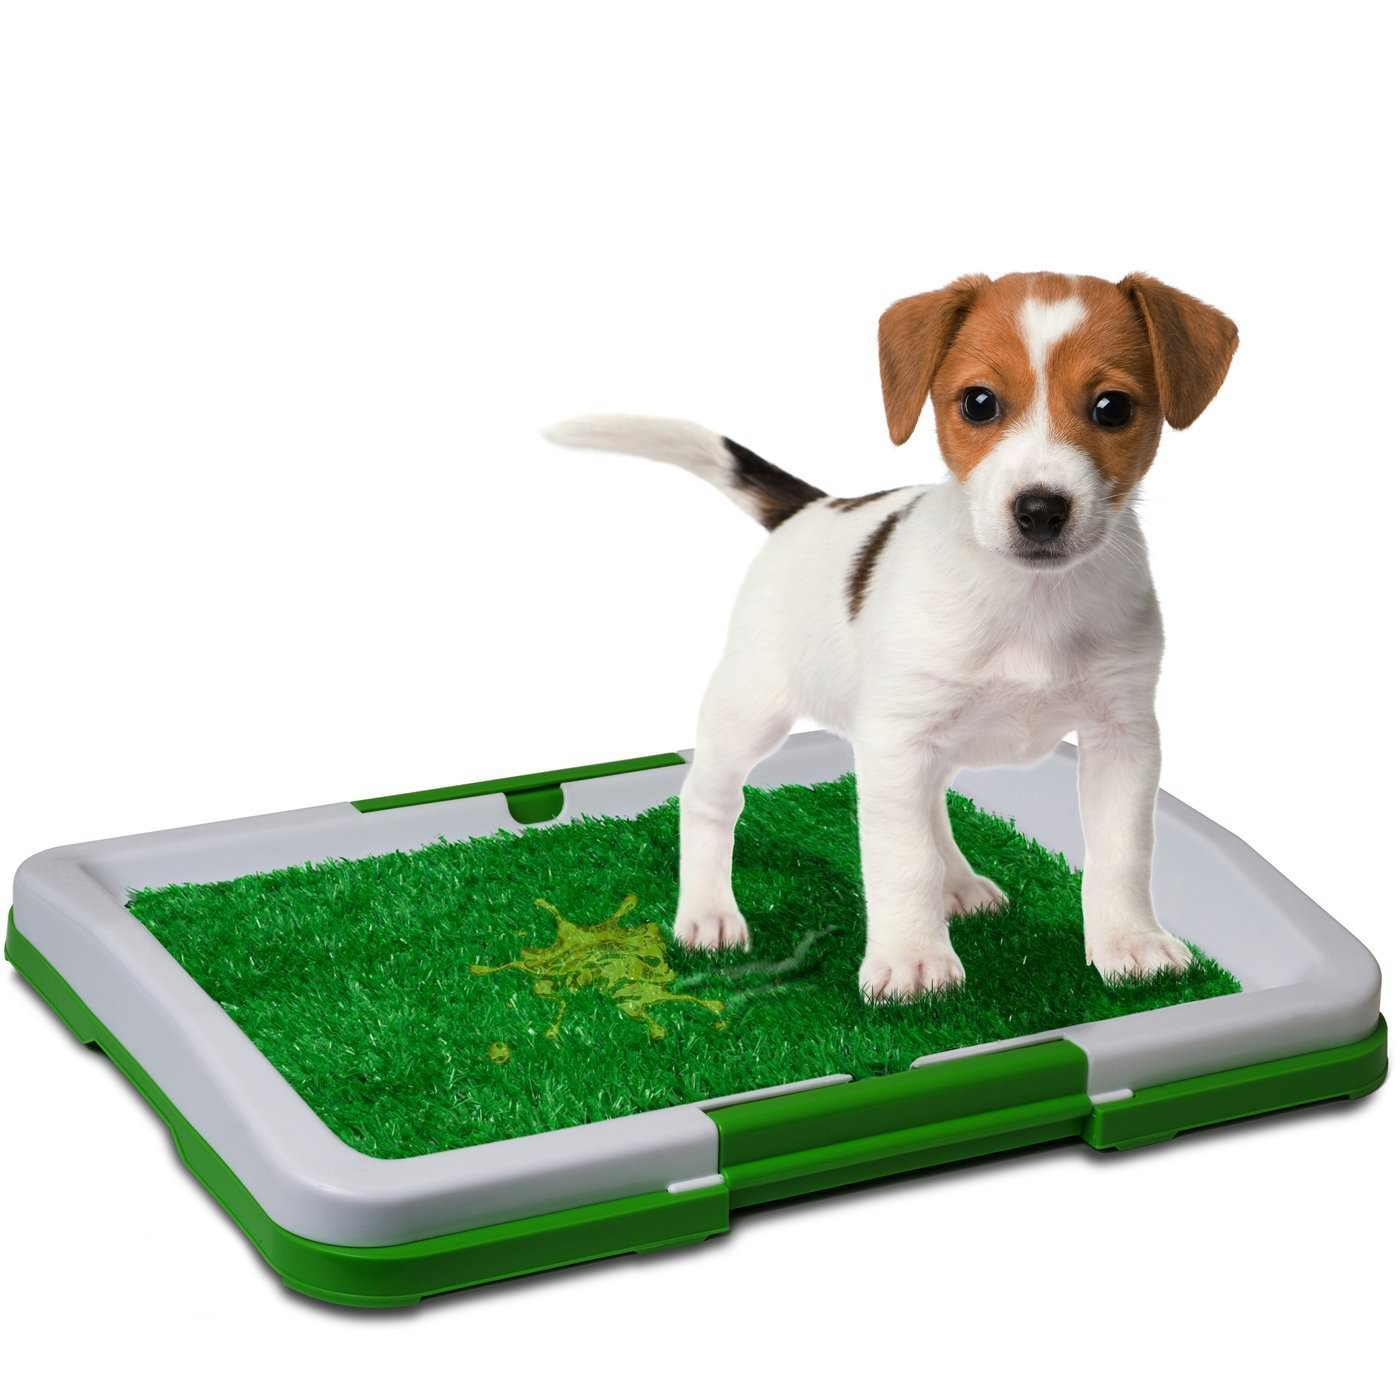 Dog Training Indoor Potty Trainer